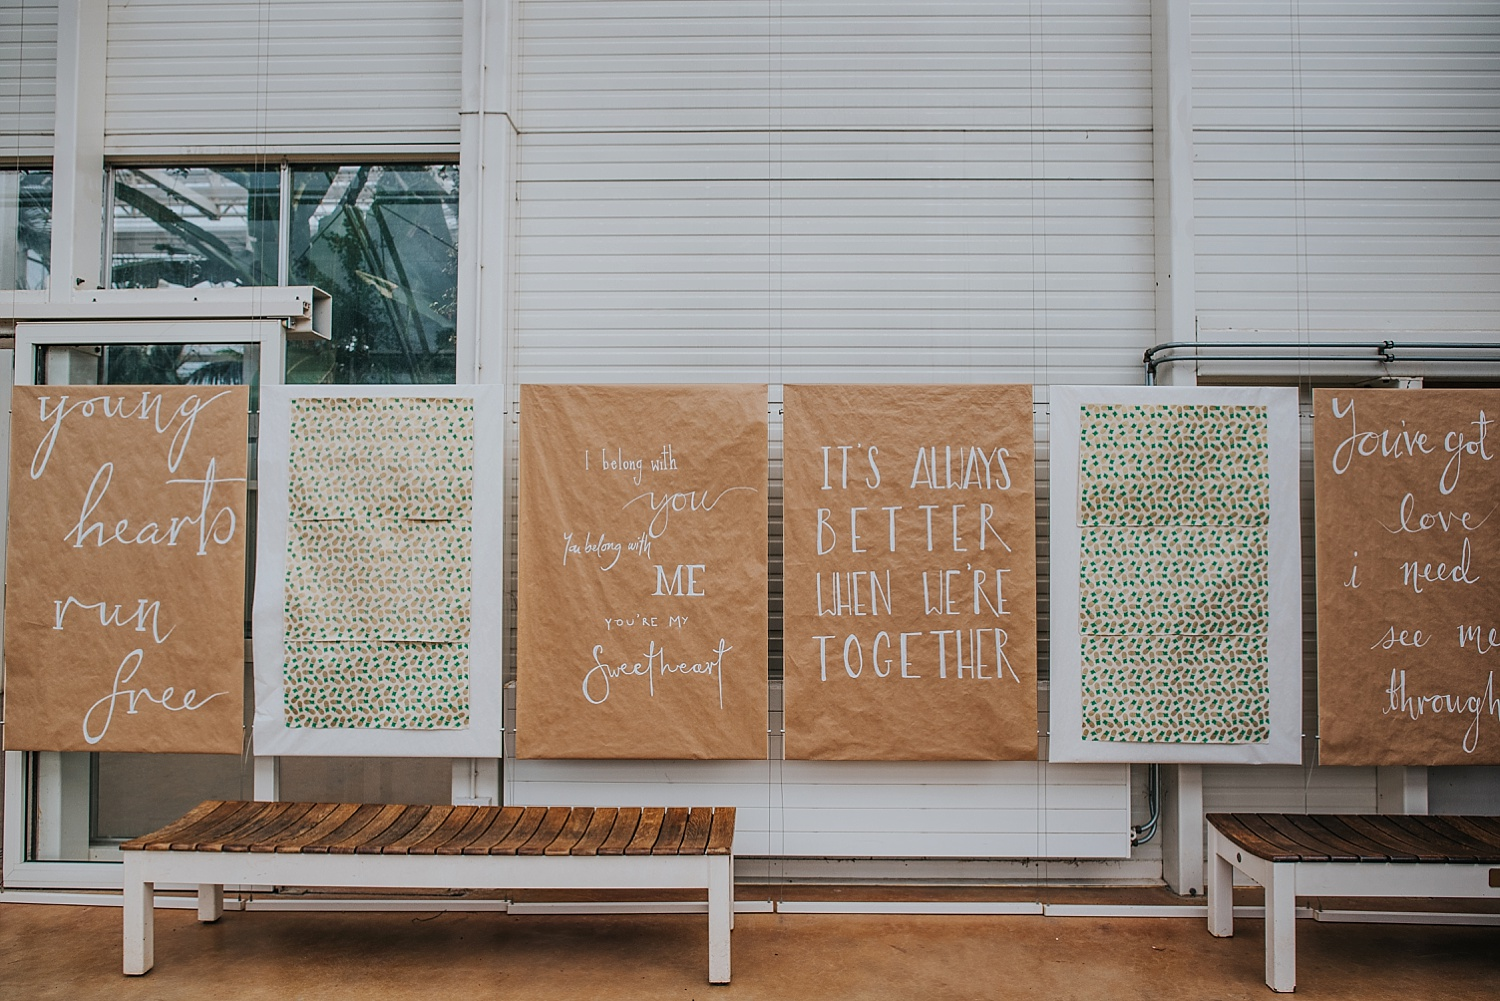 wedding details and signs inside RHS wisley glass house